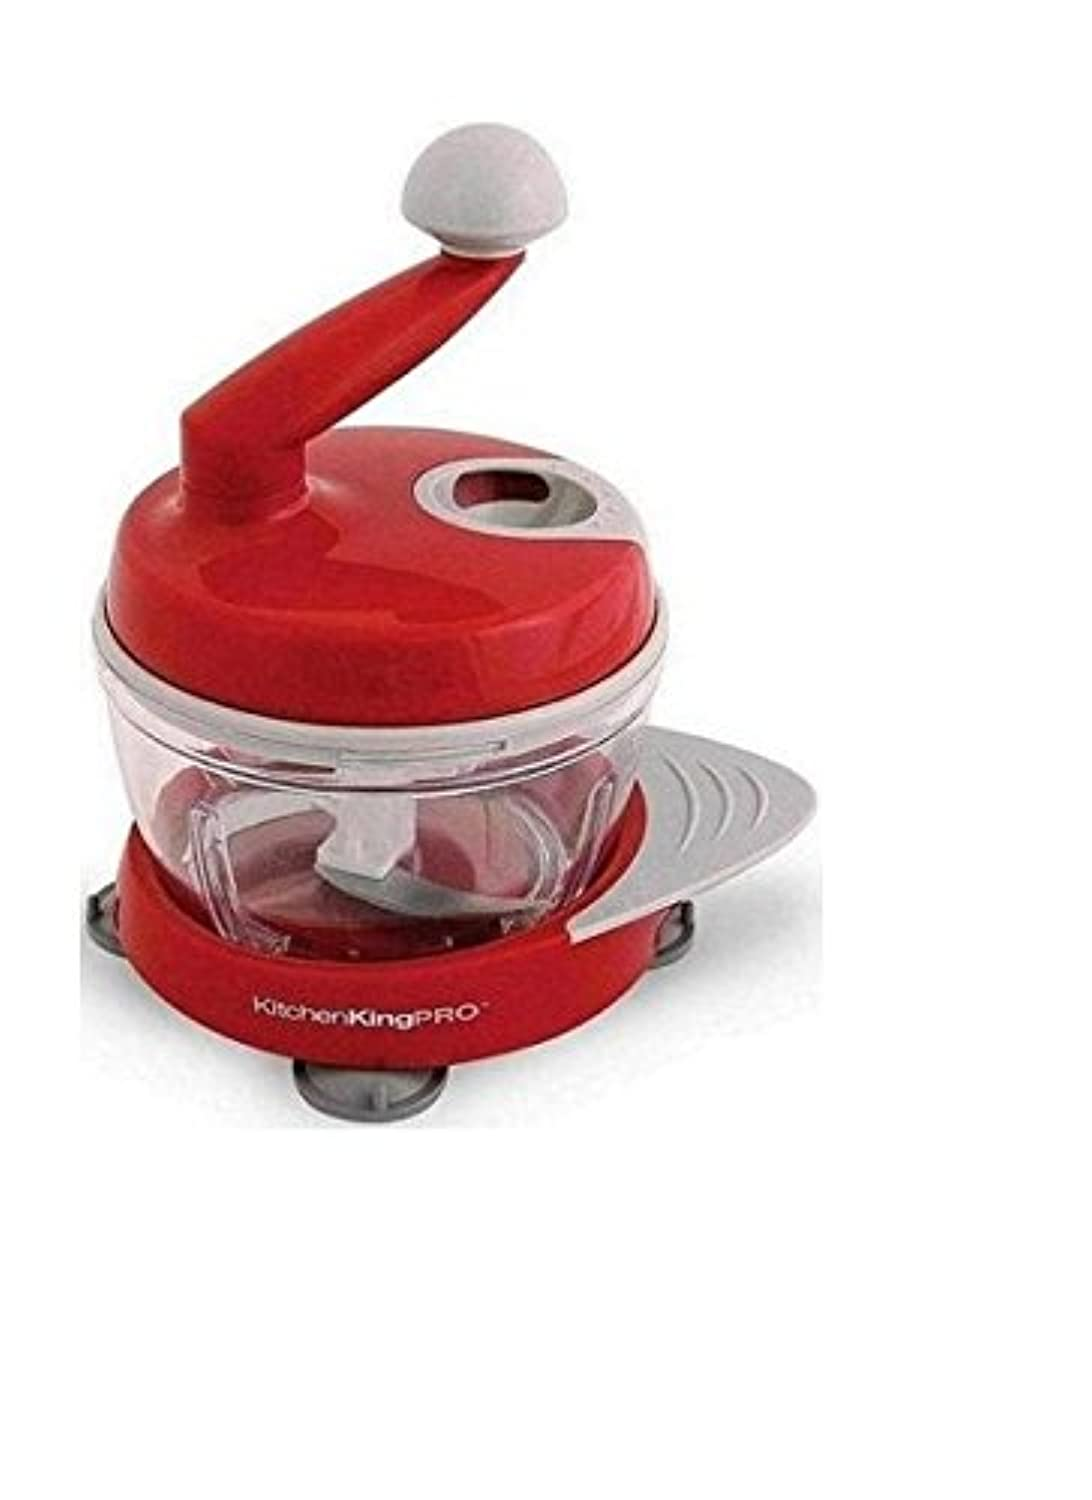 Kitchen King Pro Complete Food Preparation Station by Ontel